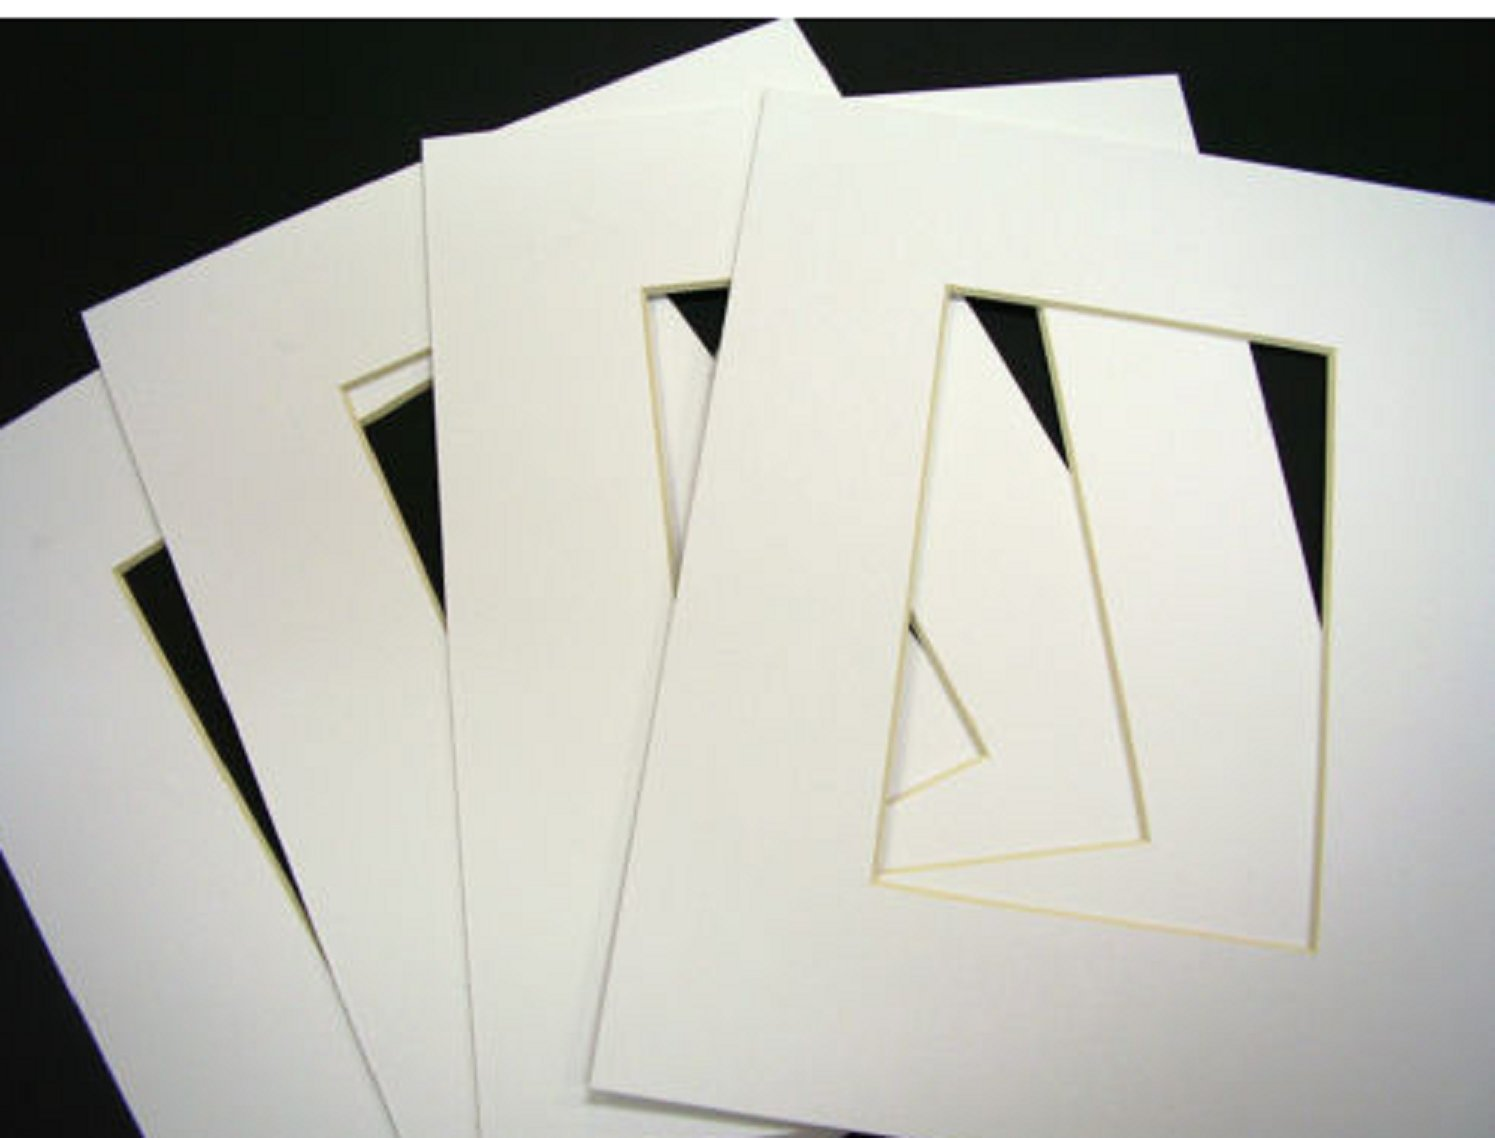 USA Premium Store Picture Framing Mats 8x10 for 4x6 photo White rectangle opening pack of 50